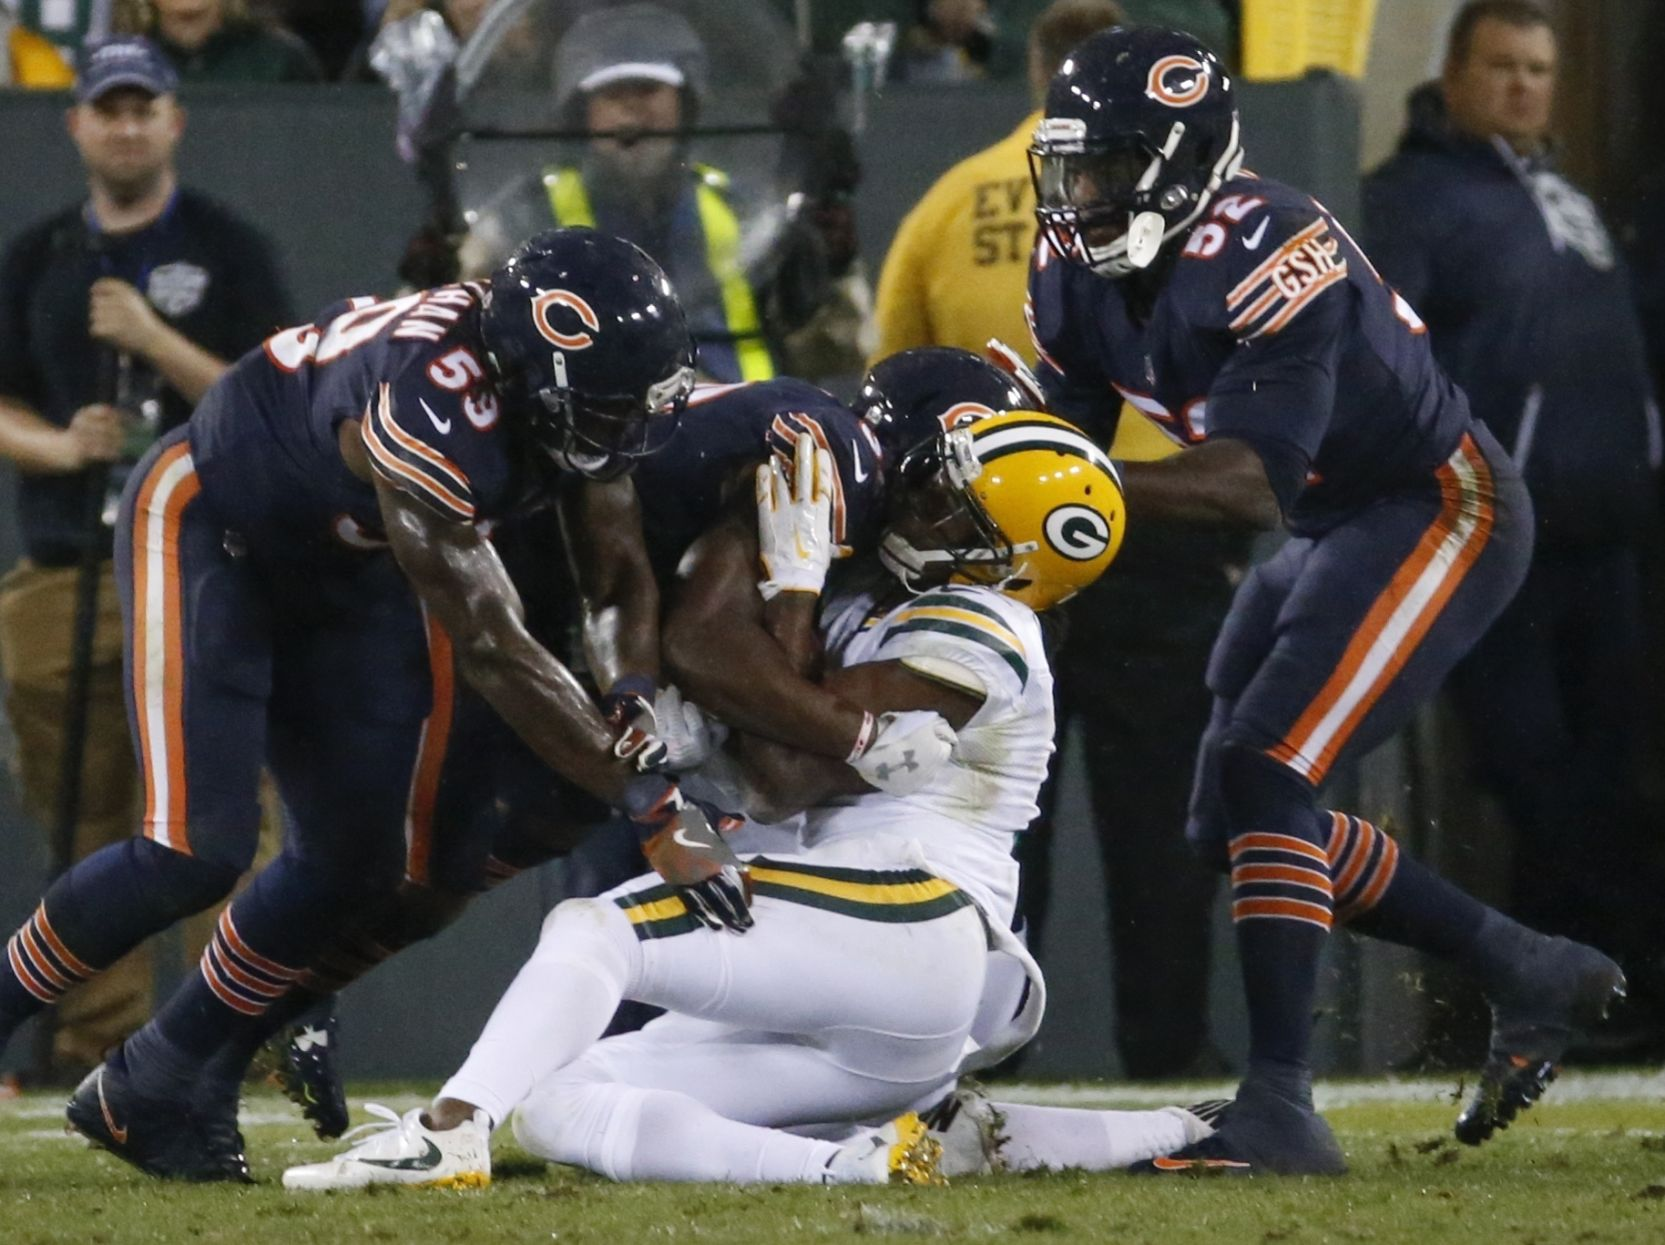 Davante Adams evaluated for head, neck injuries after helmet-to-helmet hit